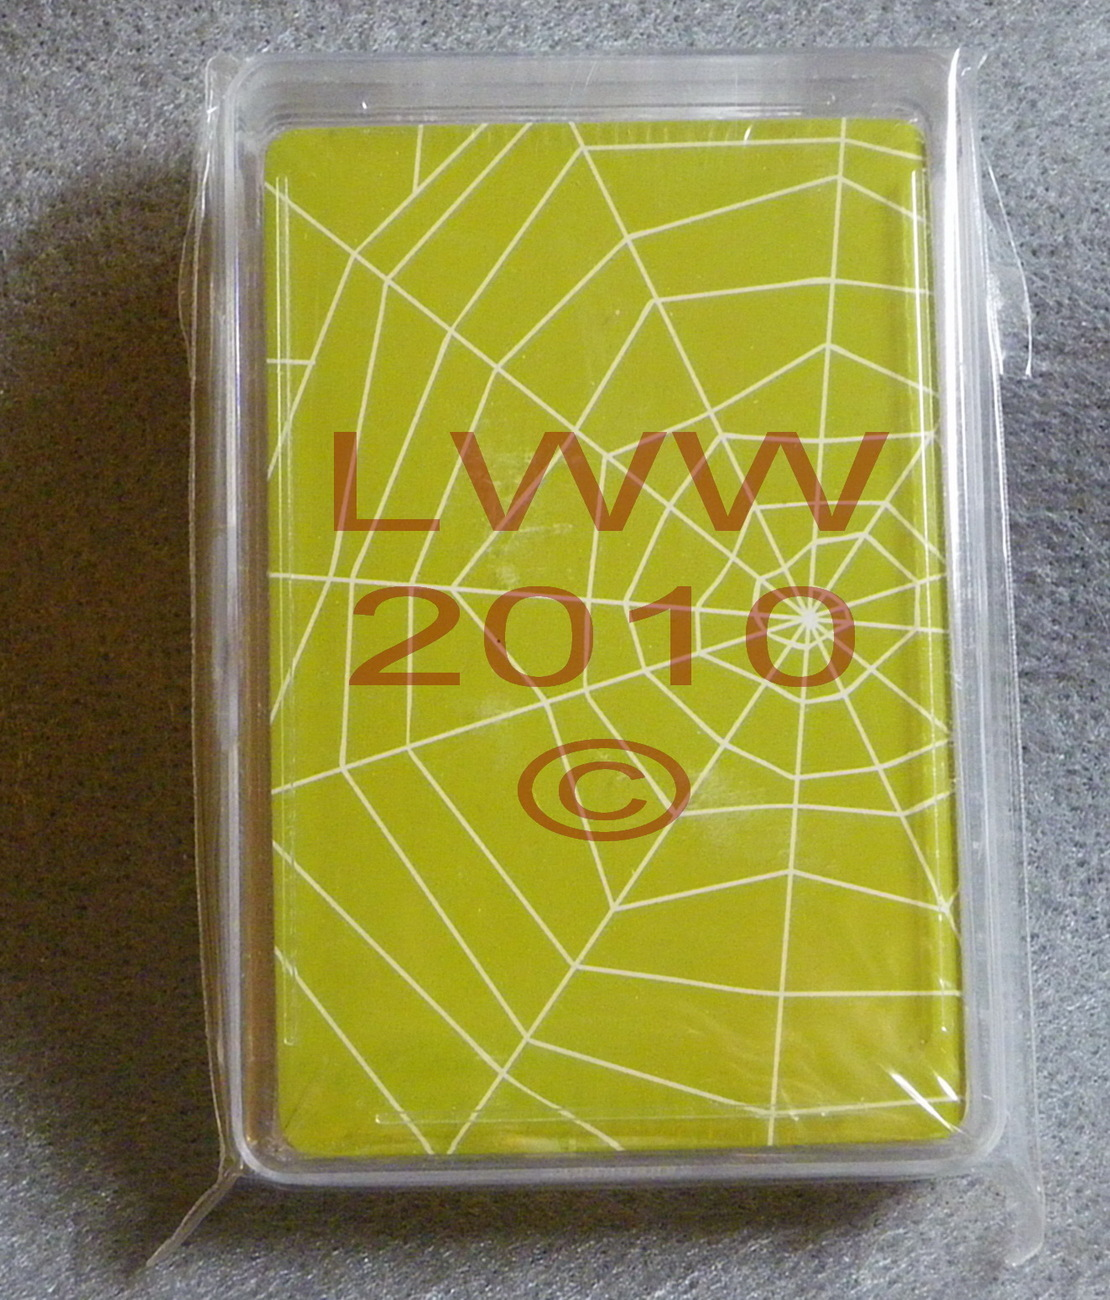 Halloween Spider Web playing cards in case